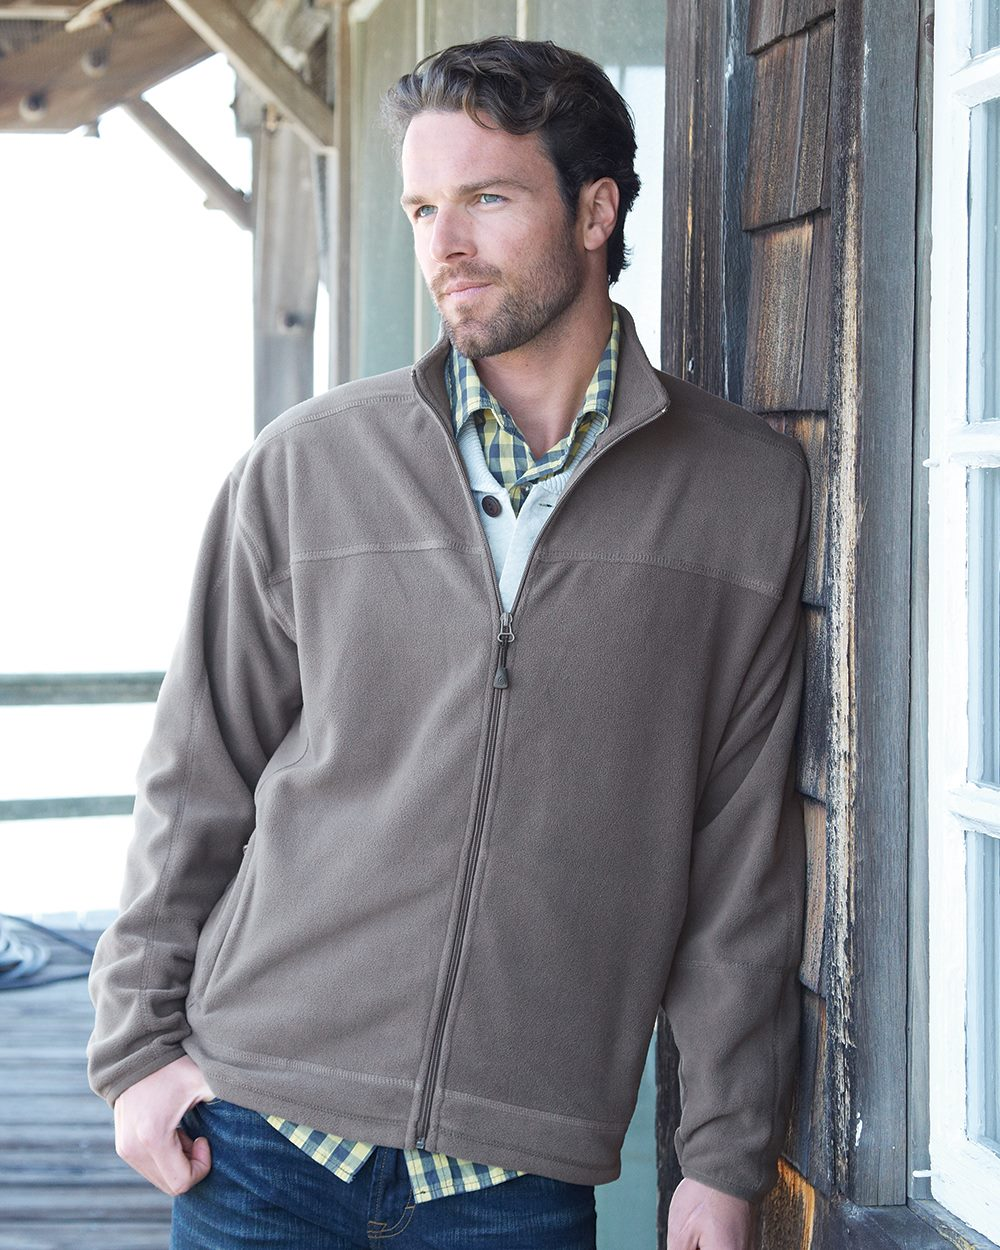 Colorado Clothing 8287 Microfleece Full-Zip Jacket